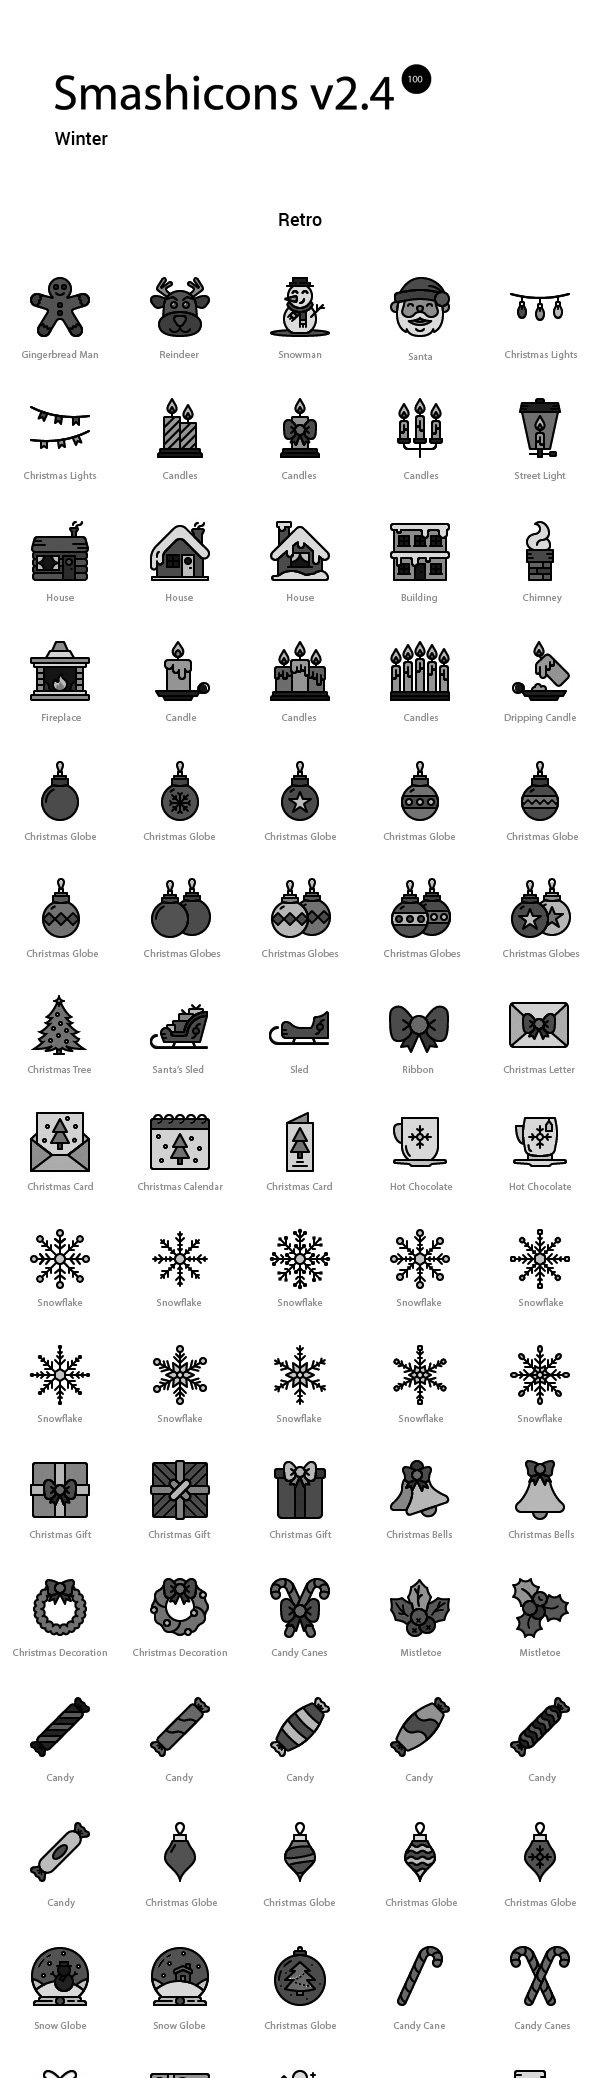 Smashicons: 100 Winter Icons